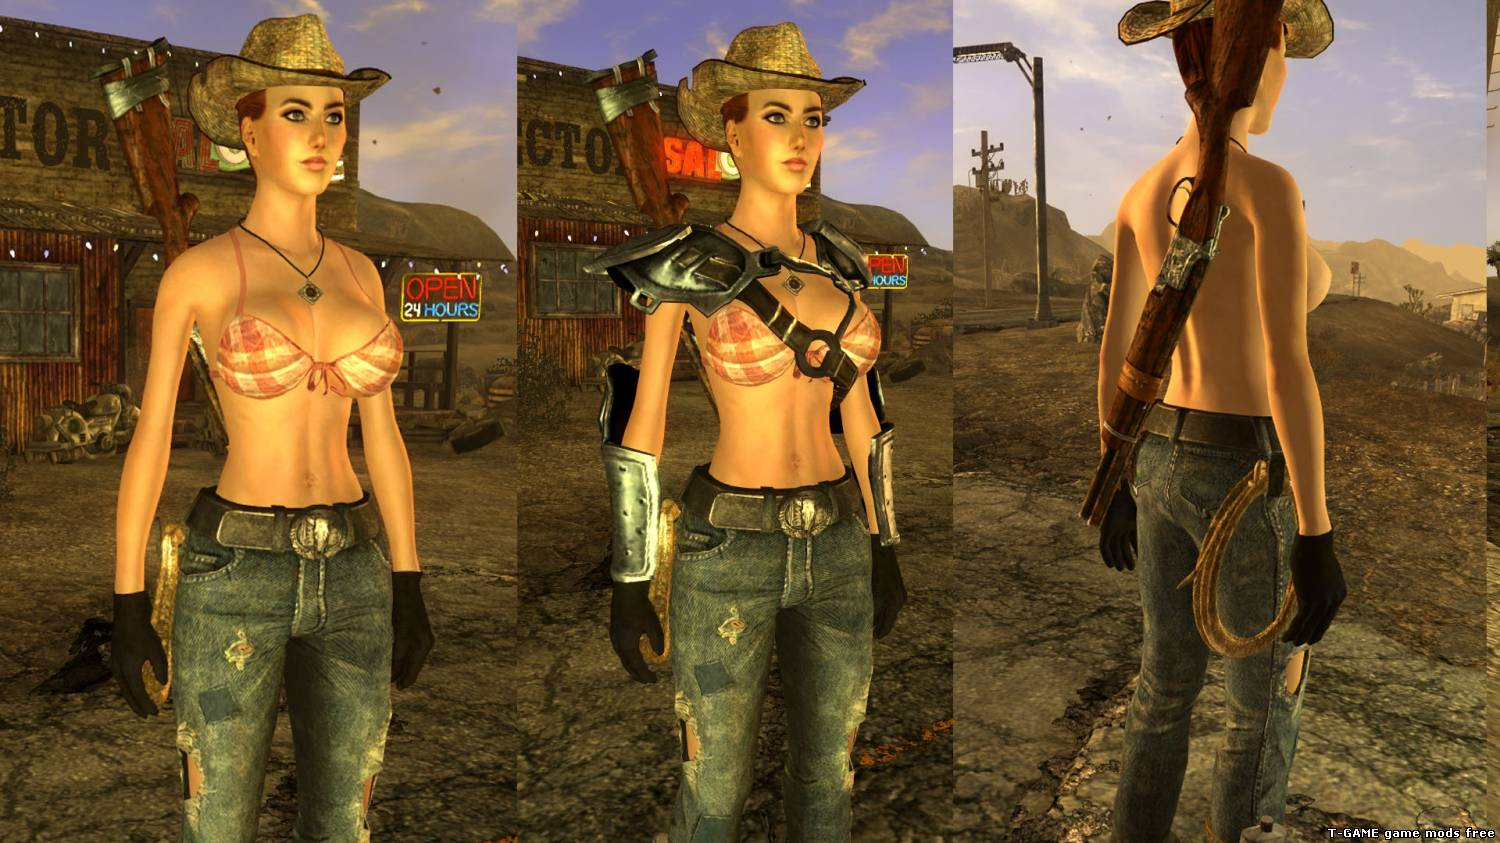 Fallout new vegas gomorrah animated sex mod hentai galleries